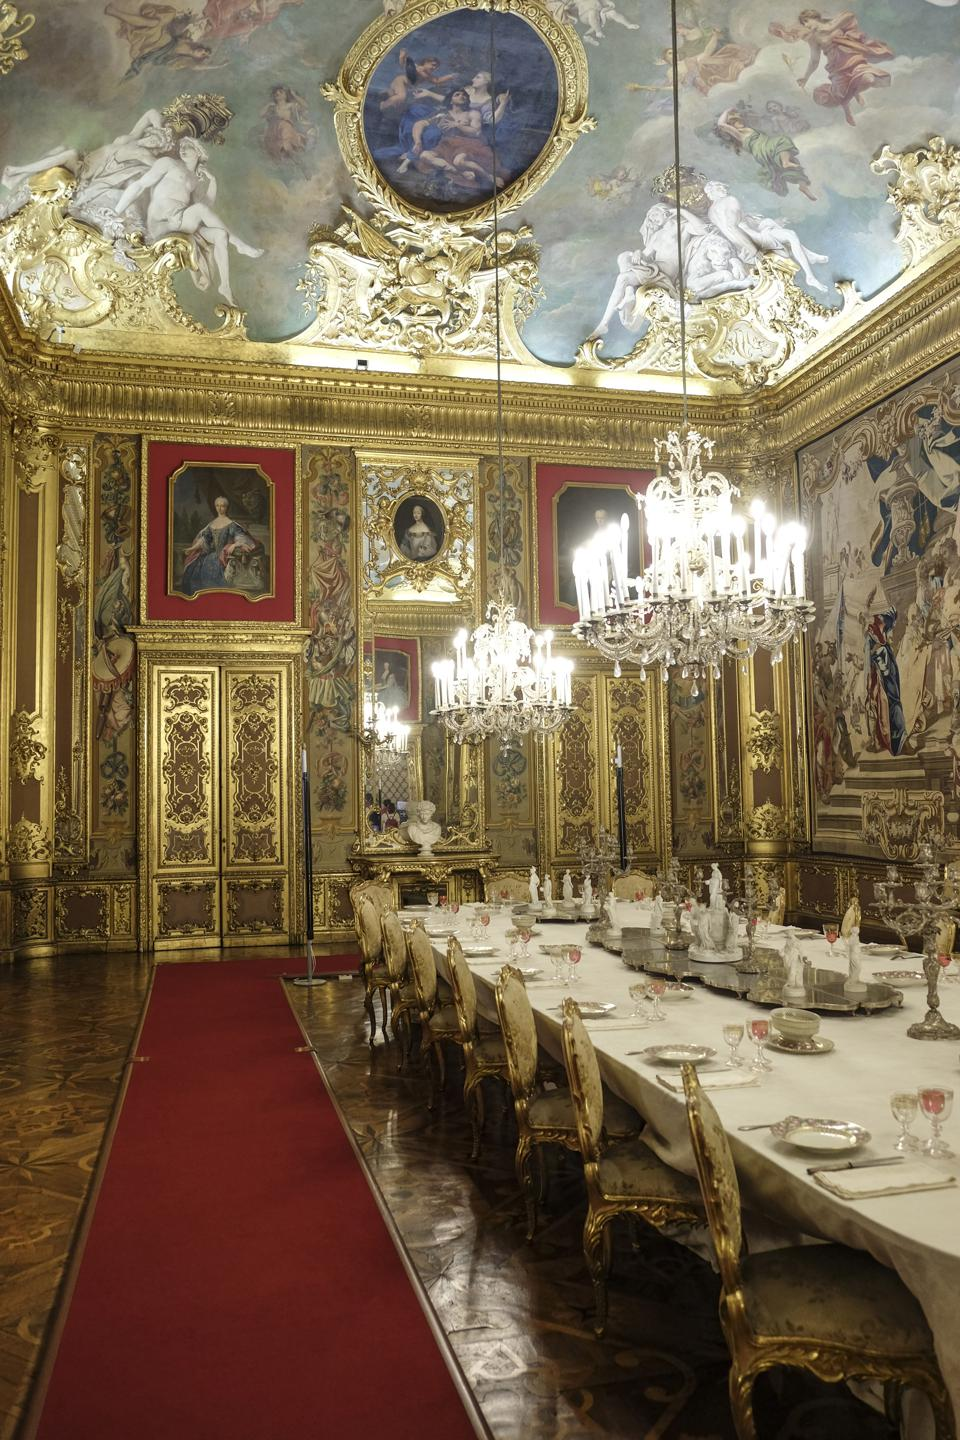 Dining room of the Palazzo Reale (Royal Palace).